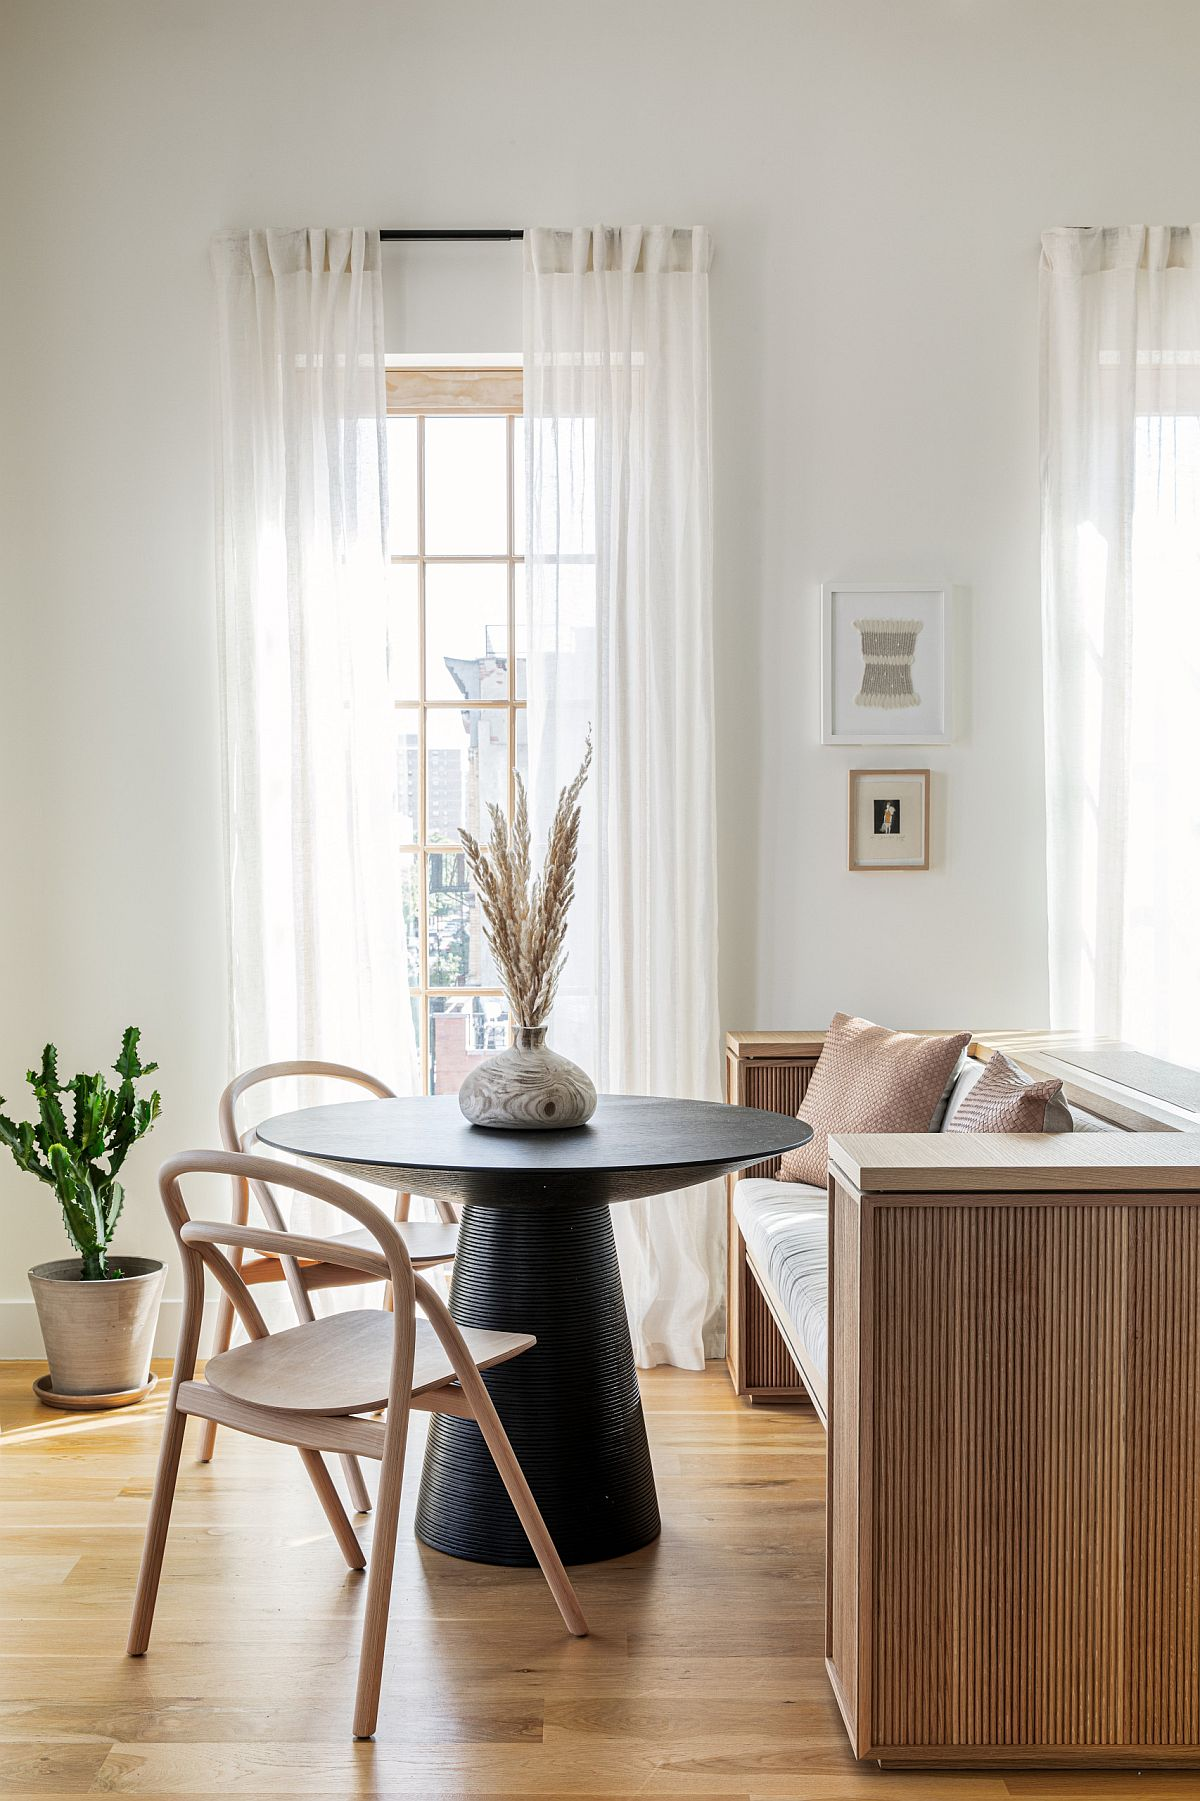 Wooden-bench-adds-additional-setaing-space-to-the-small-dining-area-with-black-round-dining-table-82152